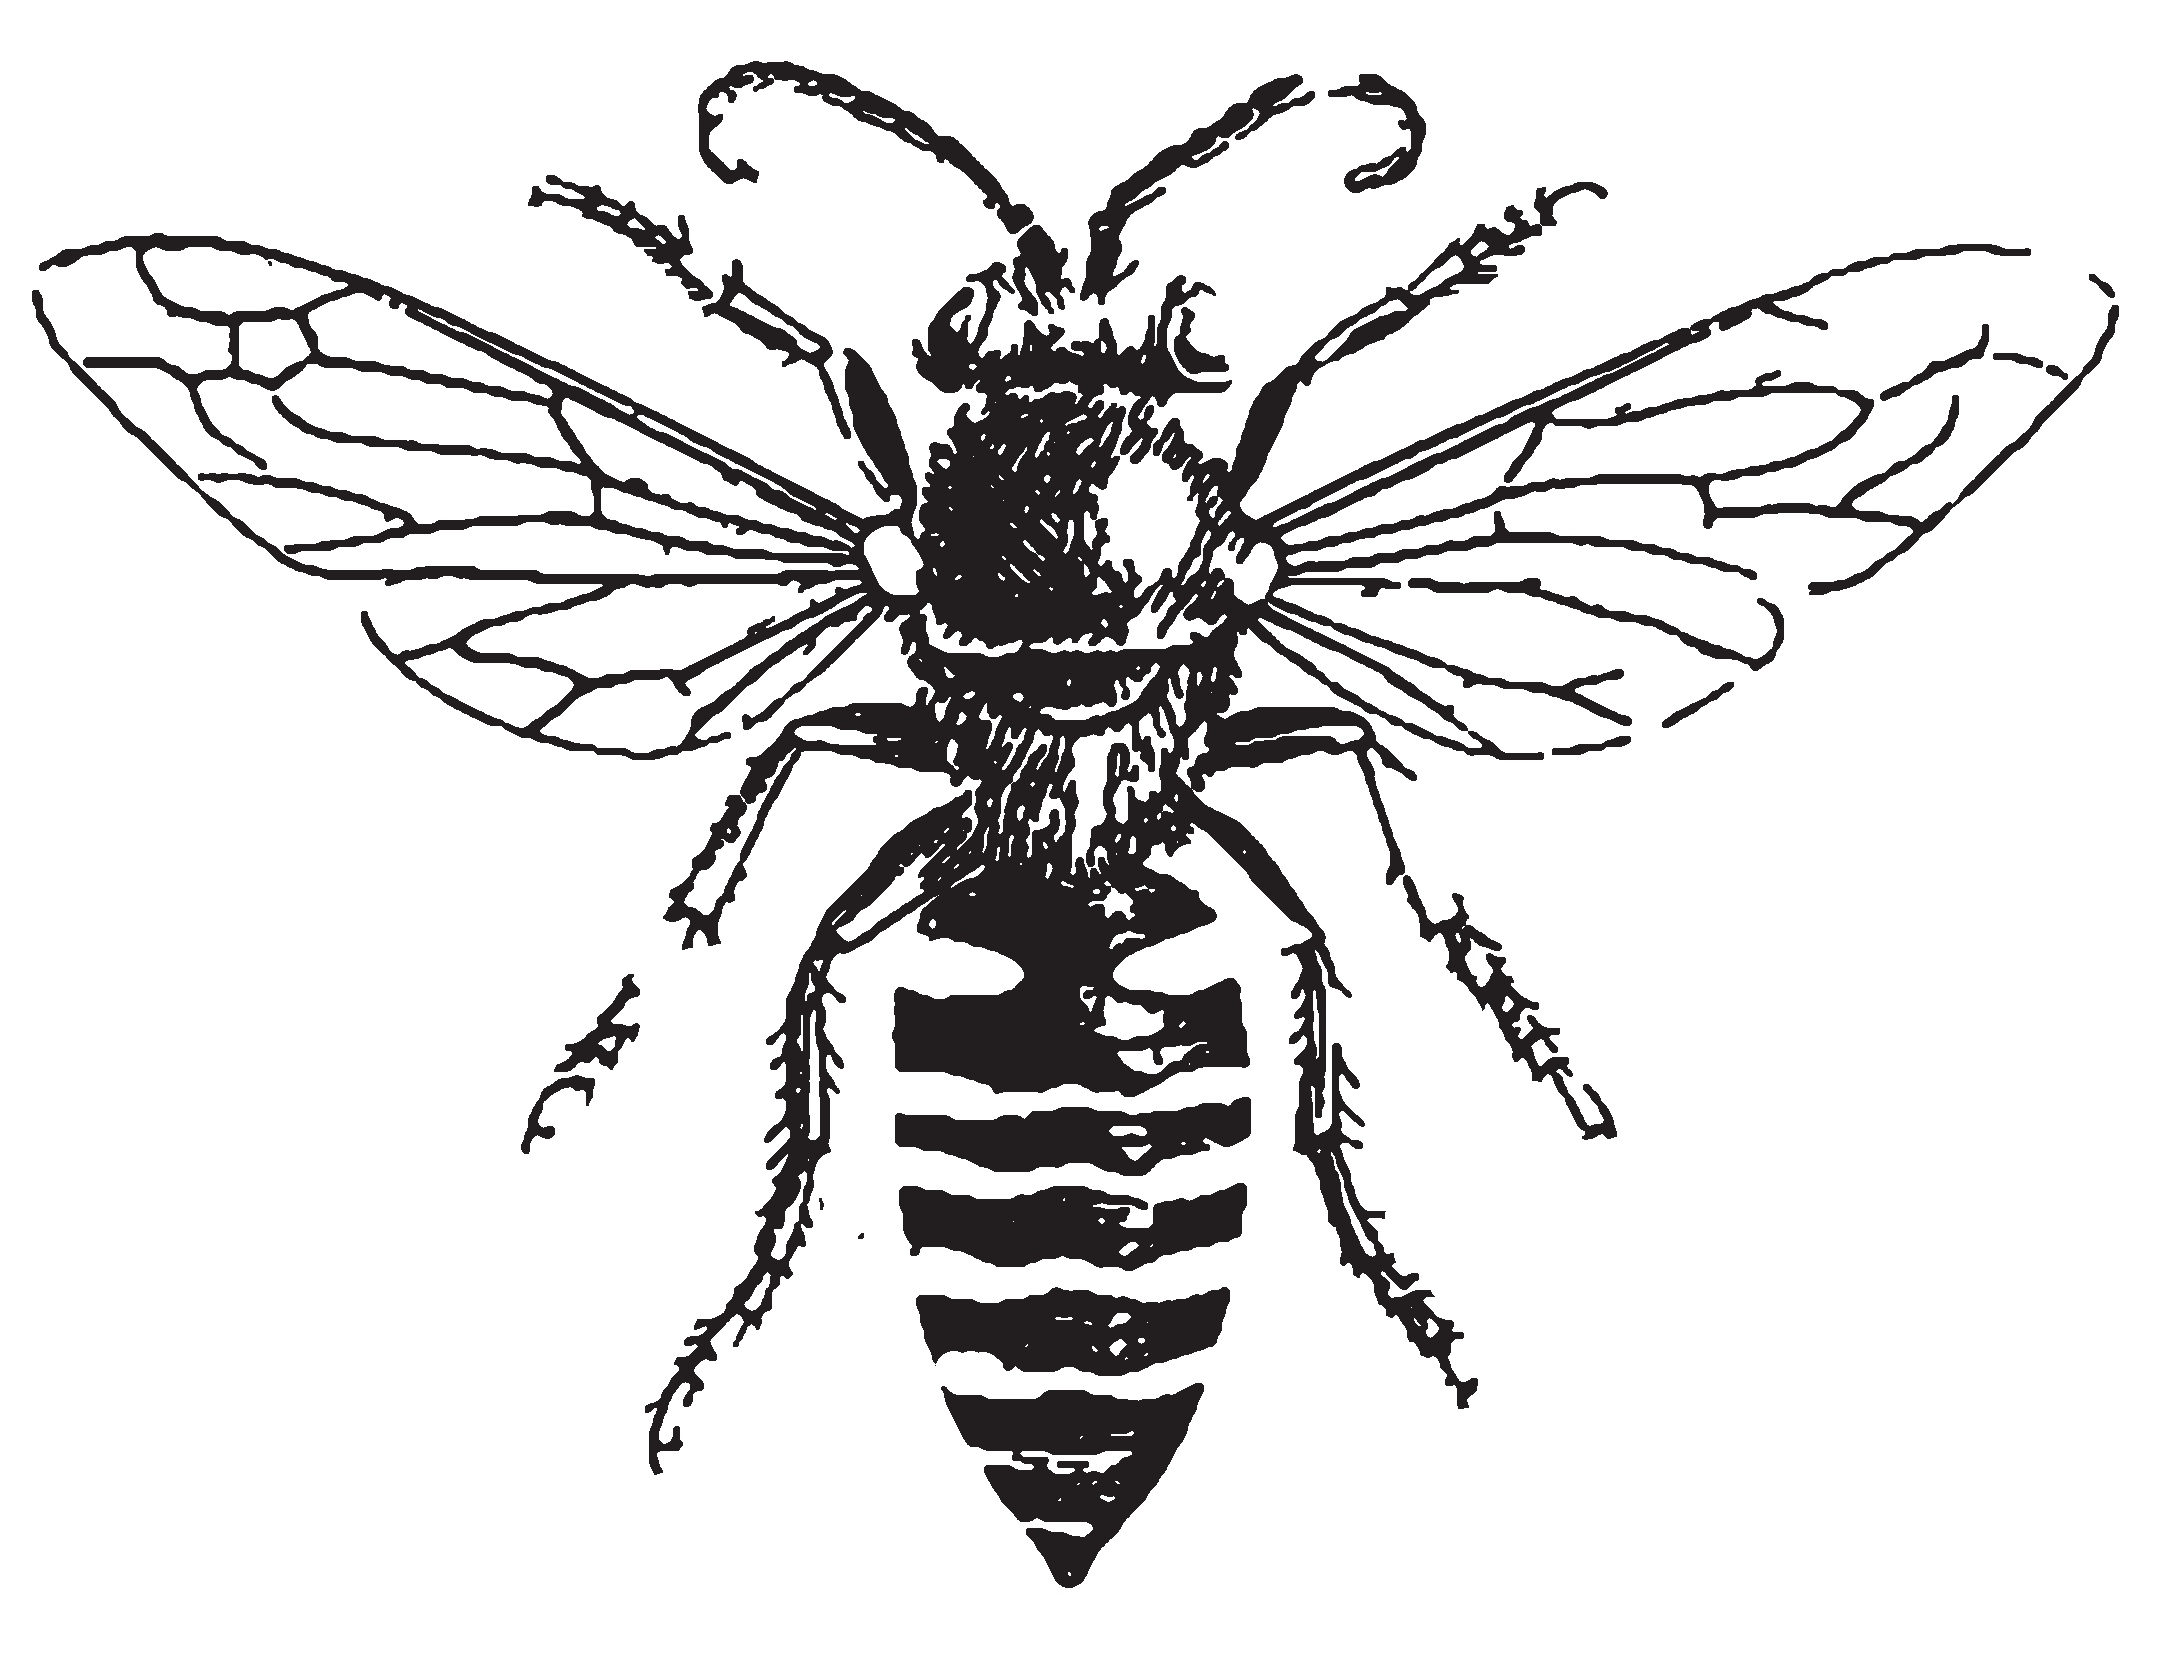 Bee drawings clipart picture transparent download Free Honey Bee Drawing, Download Free Clip Art, Free Clip Art on ... picture transparent download